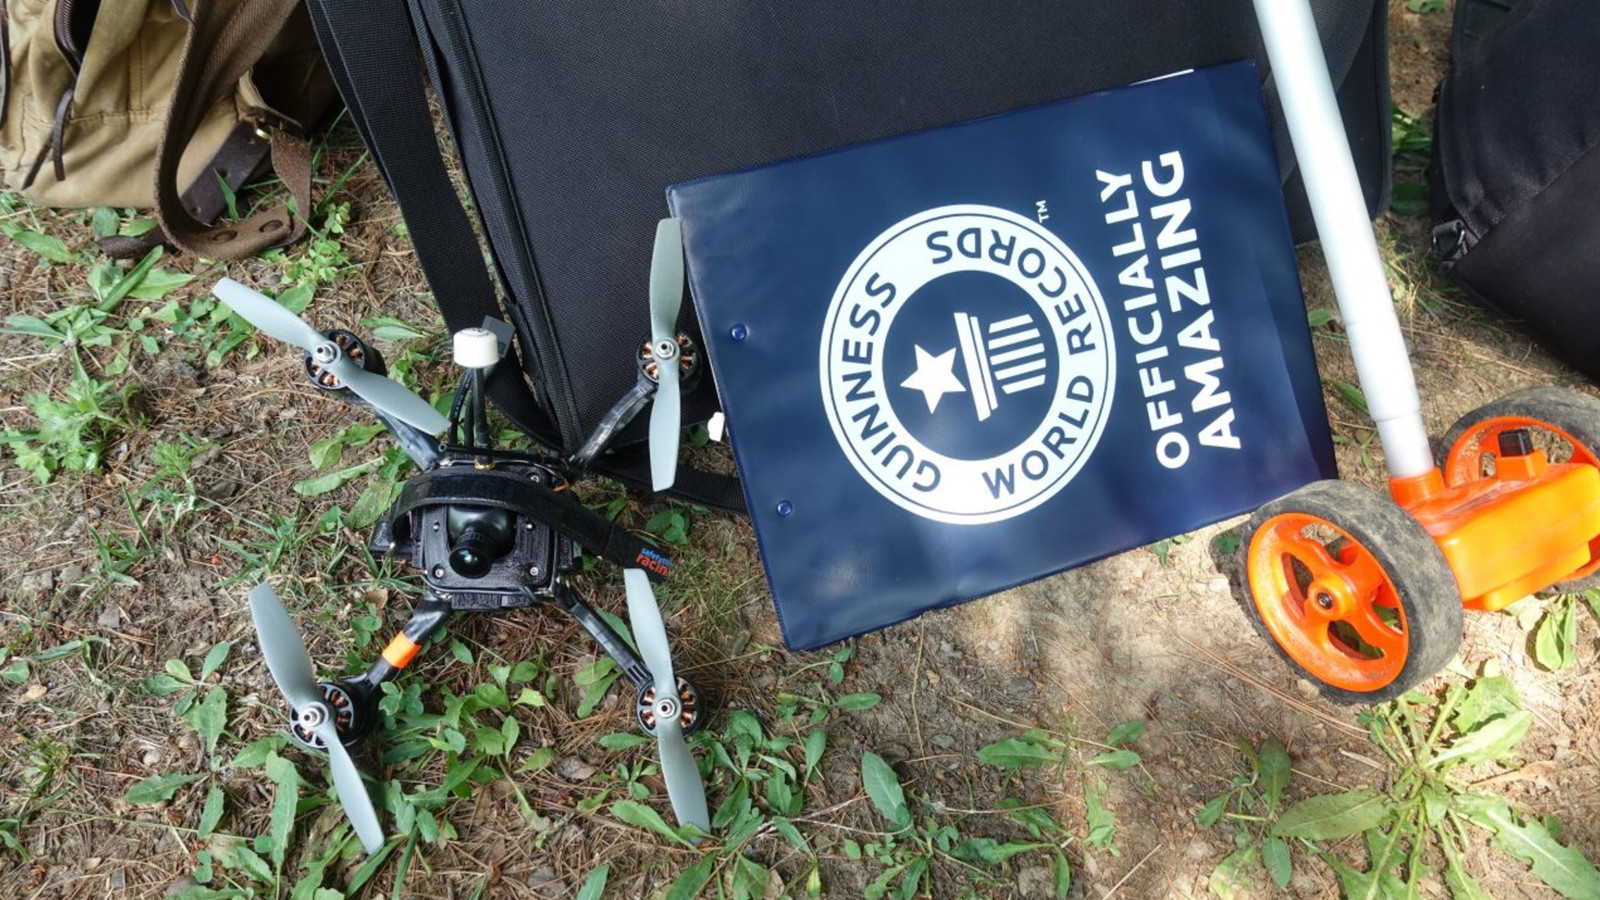 New drone claims Guinness World record with a top speed of 163 mph